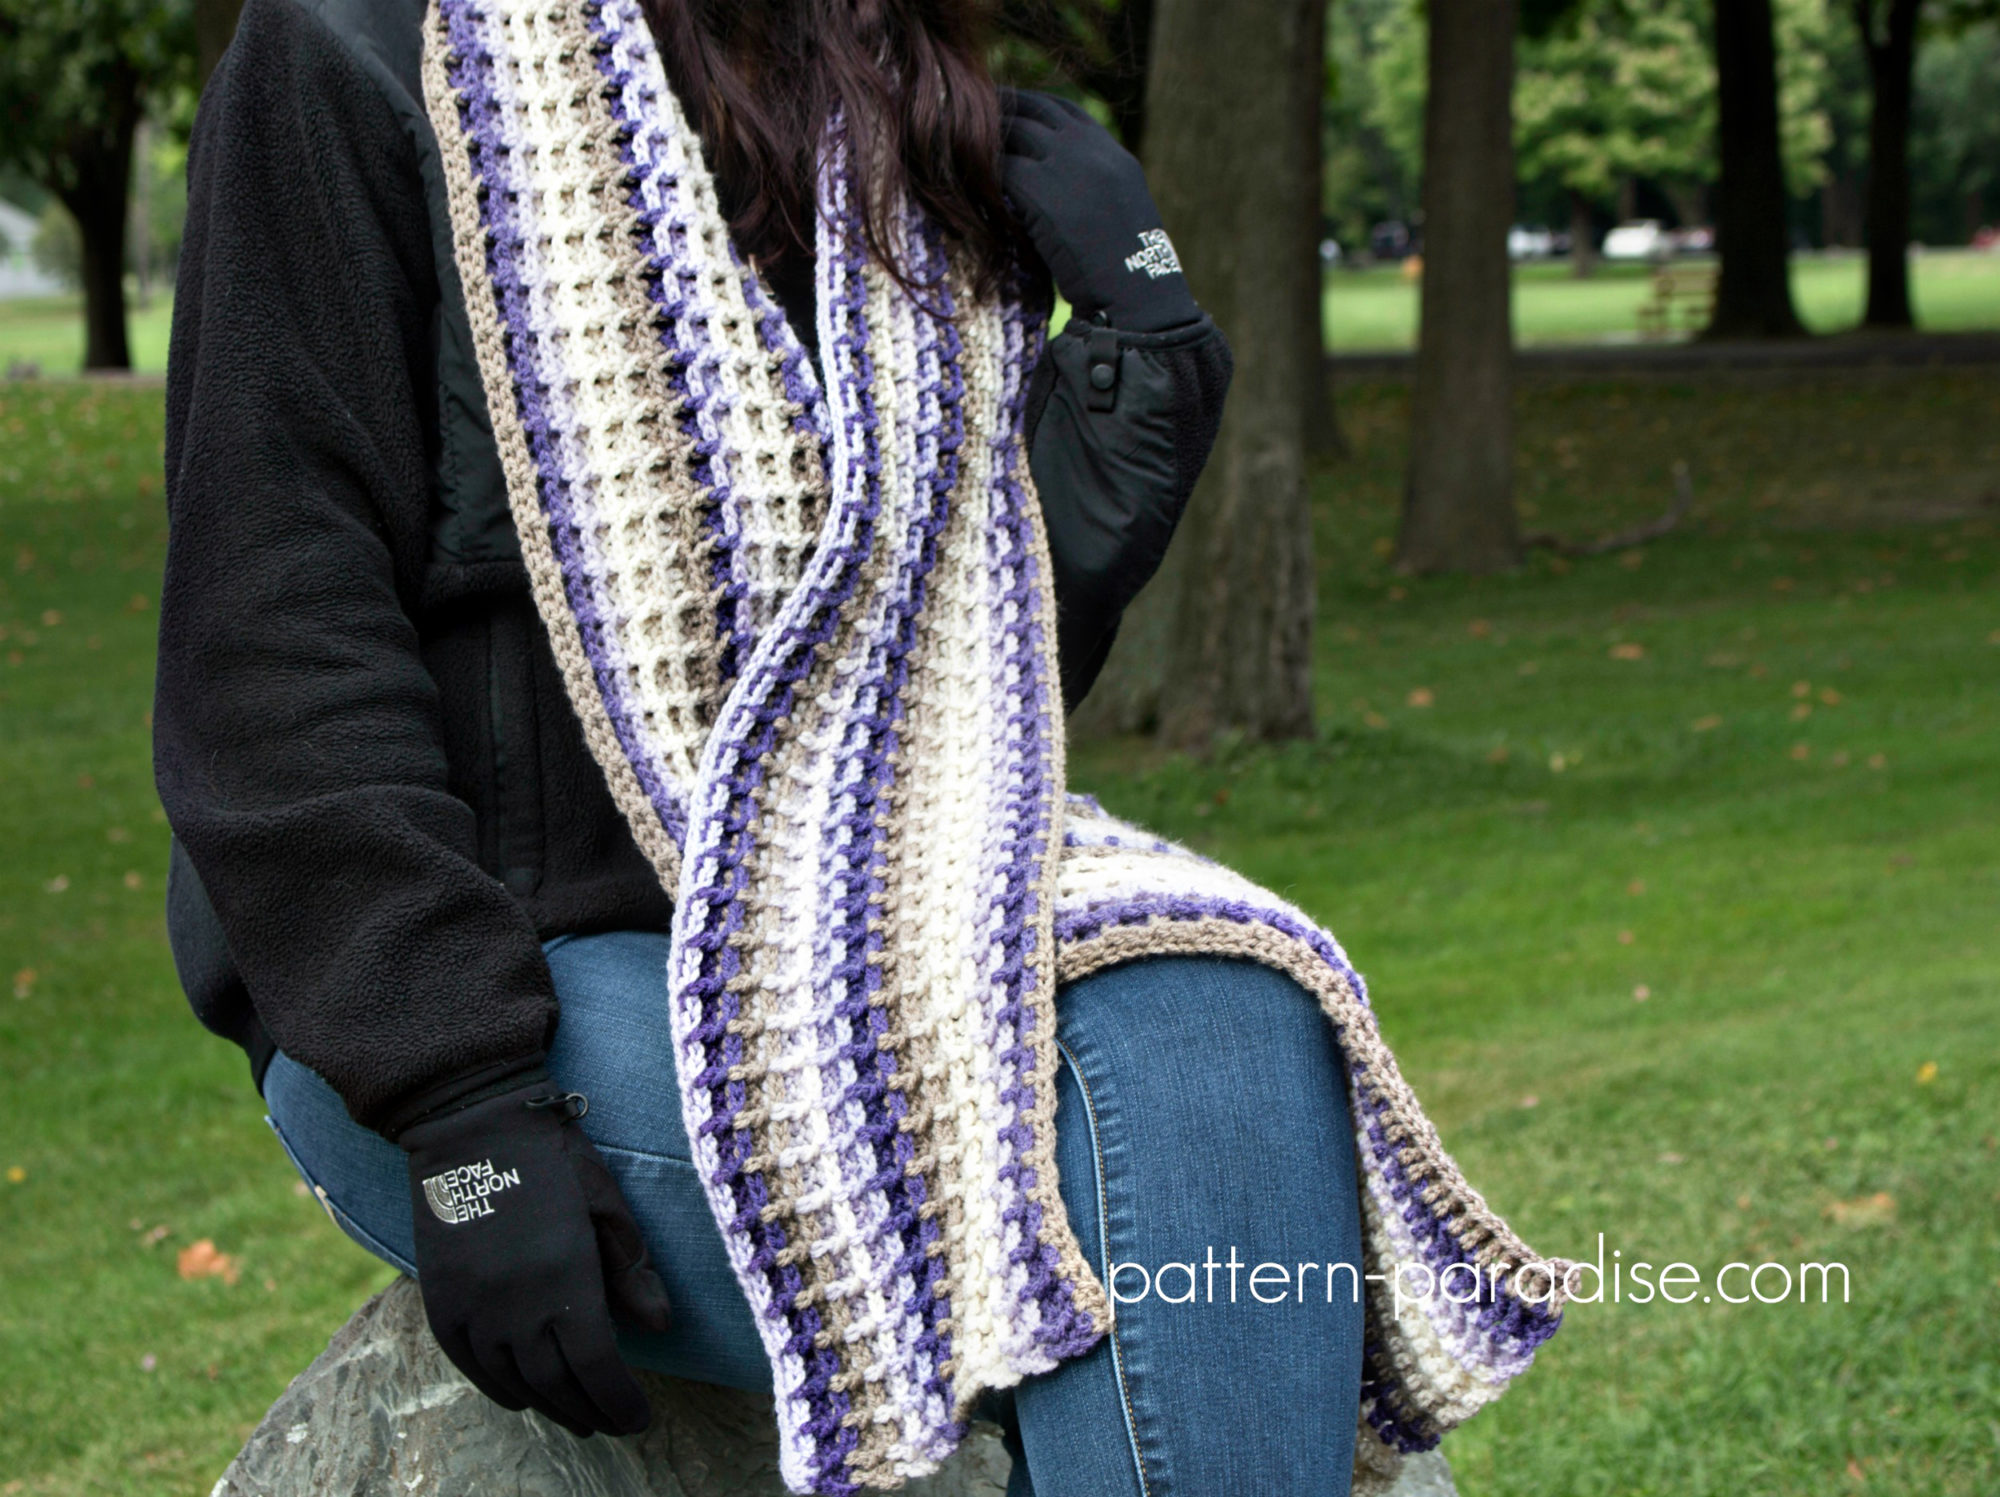 Free Crochet Pattern: Alpine Nights Scarf | Pattern Paradise